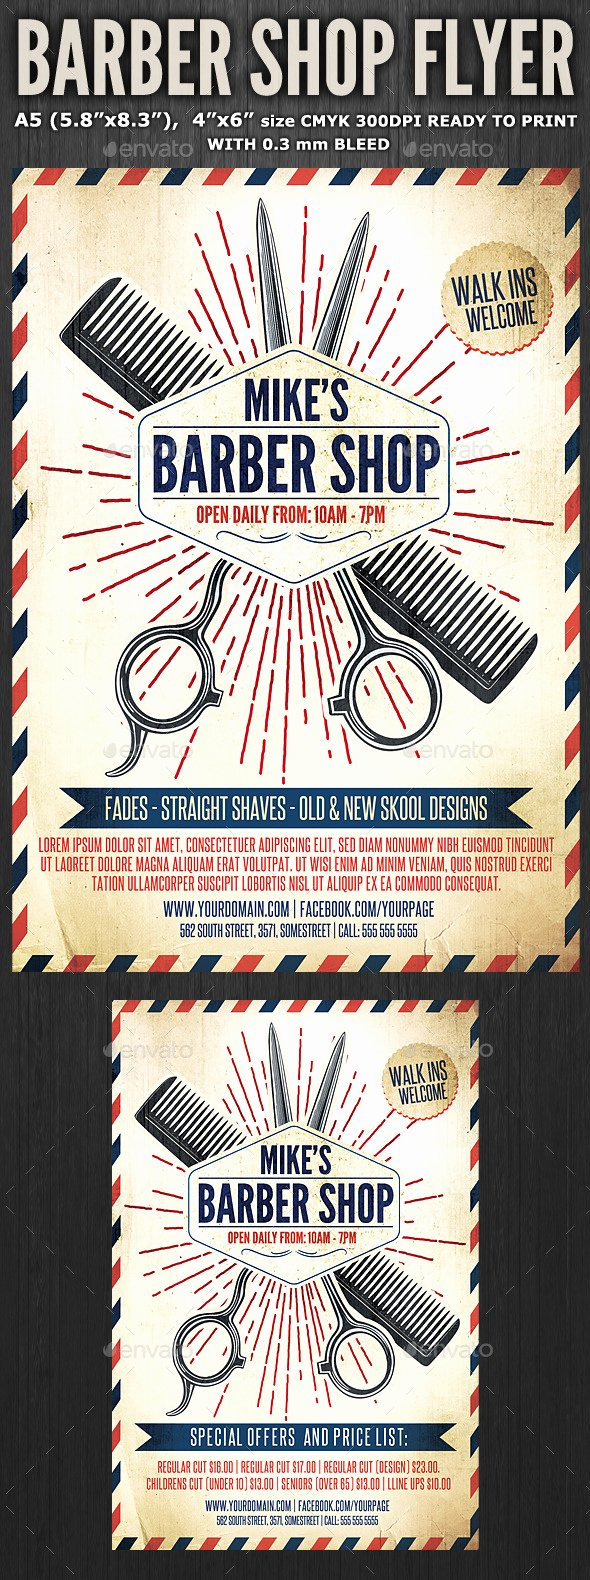 Barber Shop Flyers Template Fresh Barber Shop Flyer Template 3 by Hotpin